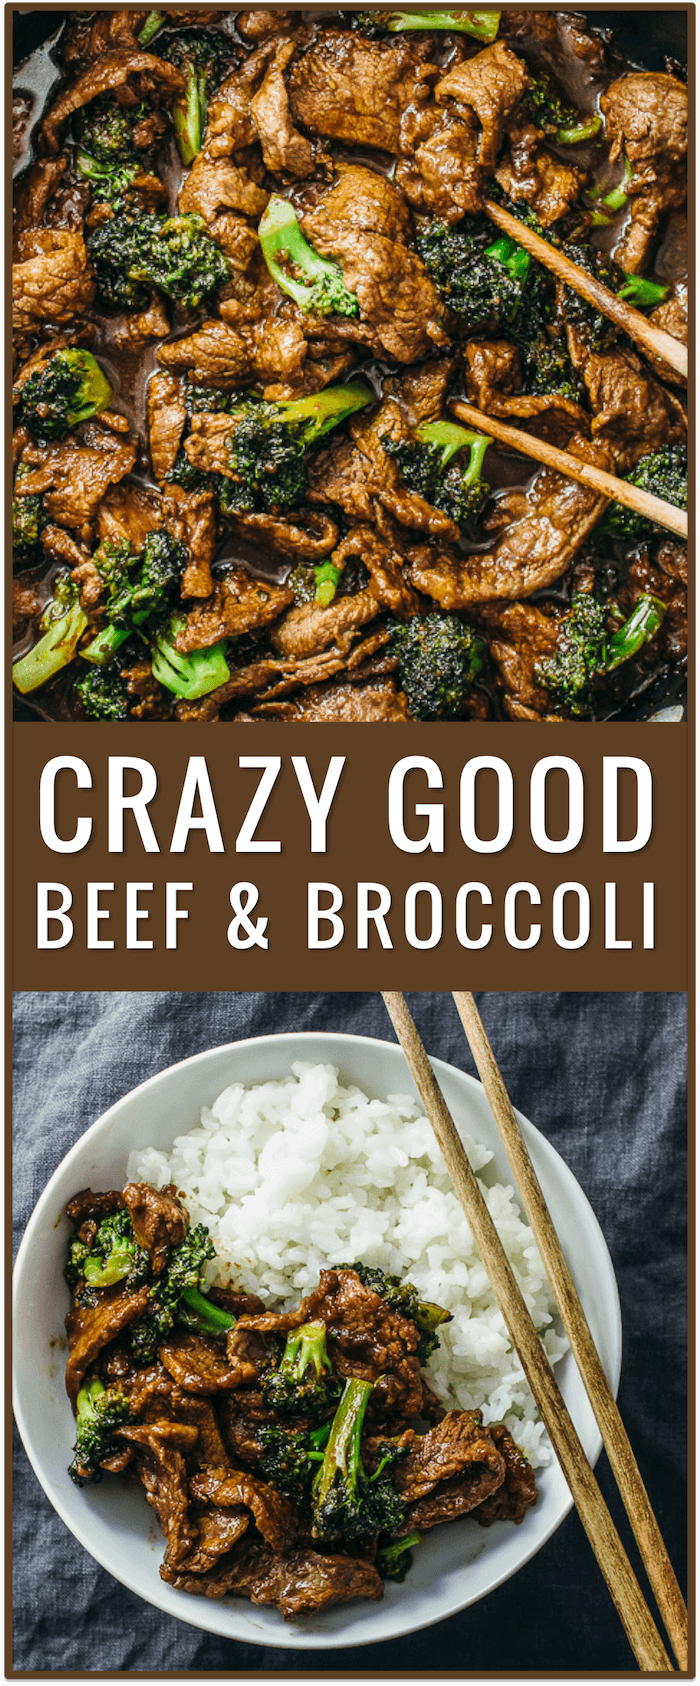 easy beef and broccoli recipe, slow cooker, healthy, authentic Chinese recipe, simple, stir fry, lunch, dinner, steak, rice, crock pot, paleo, sauce, noodles